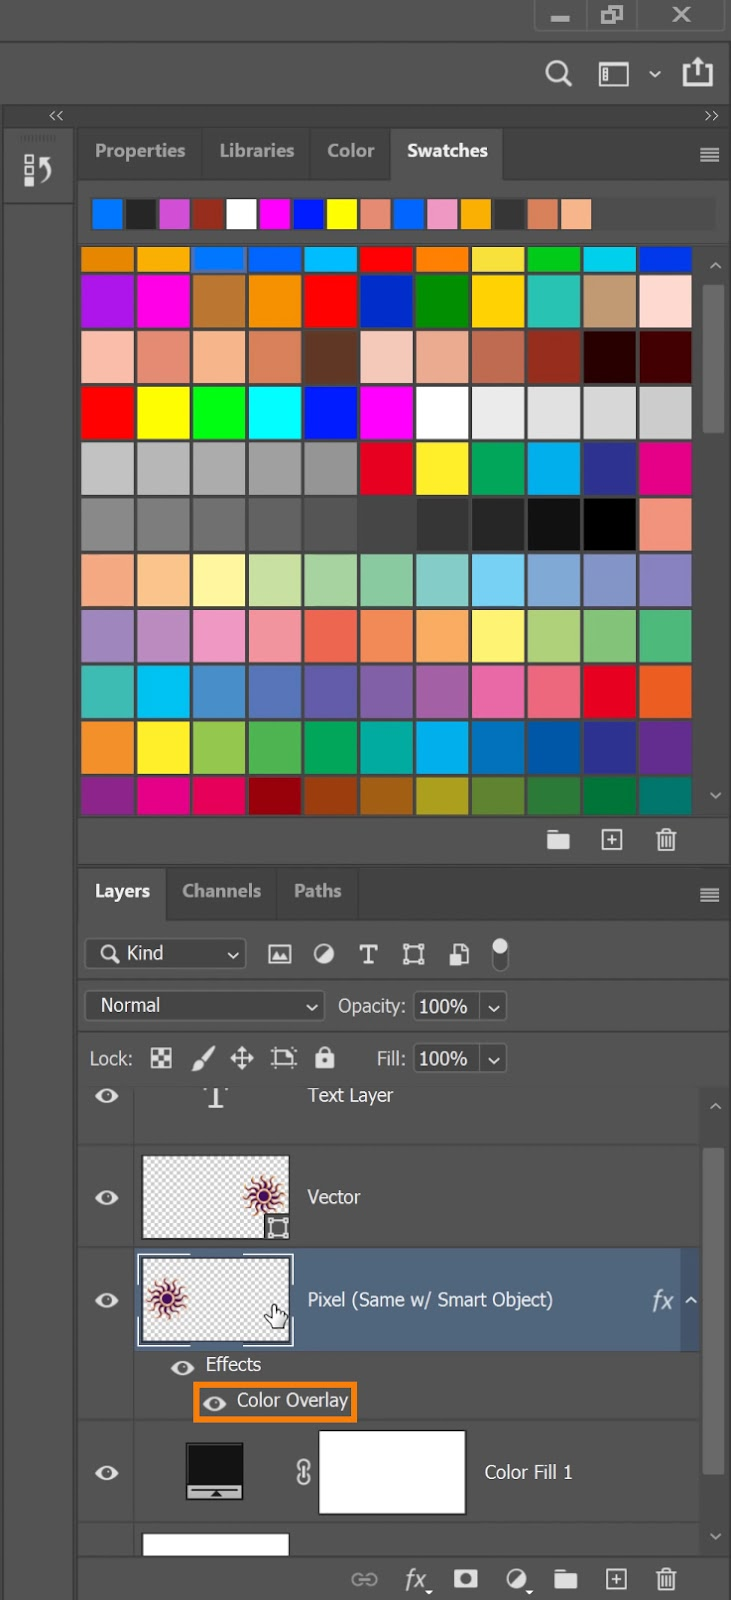 Double-click on the Color Overlay